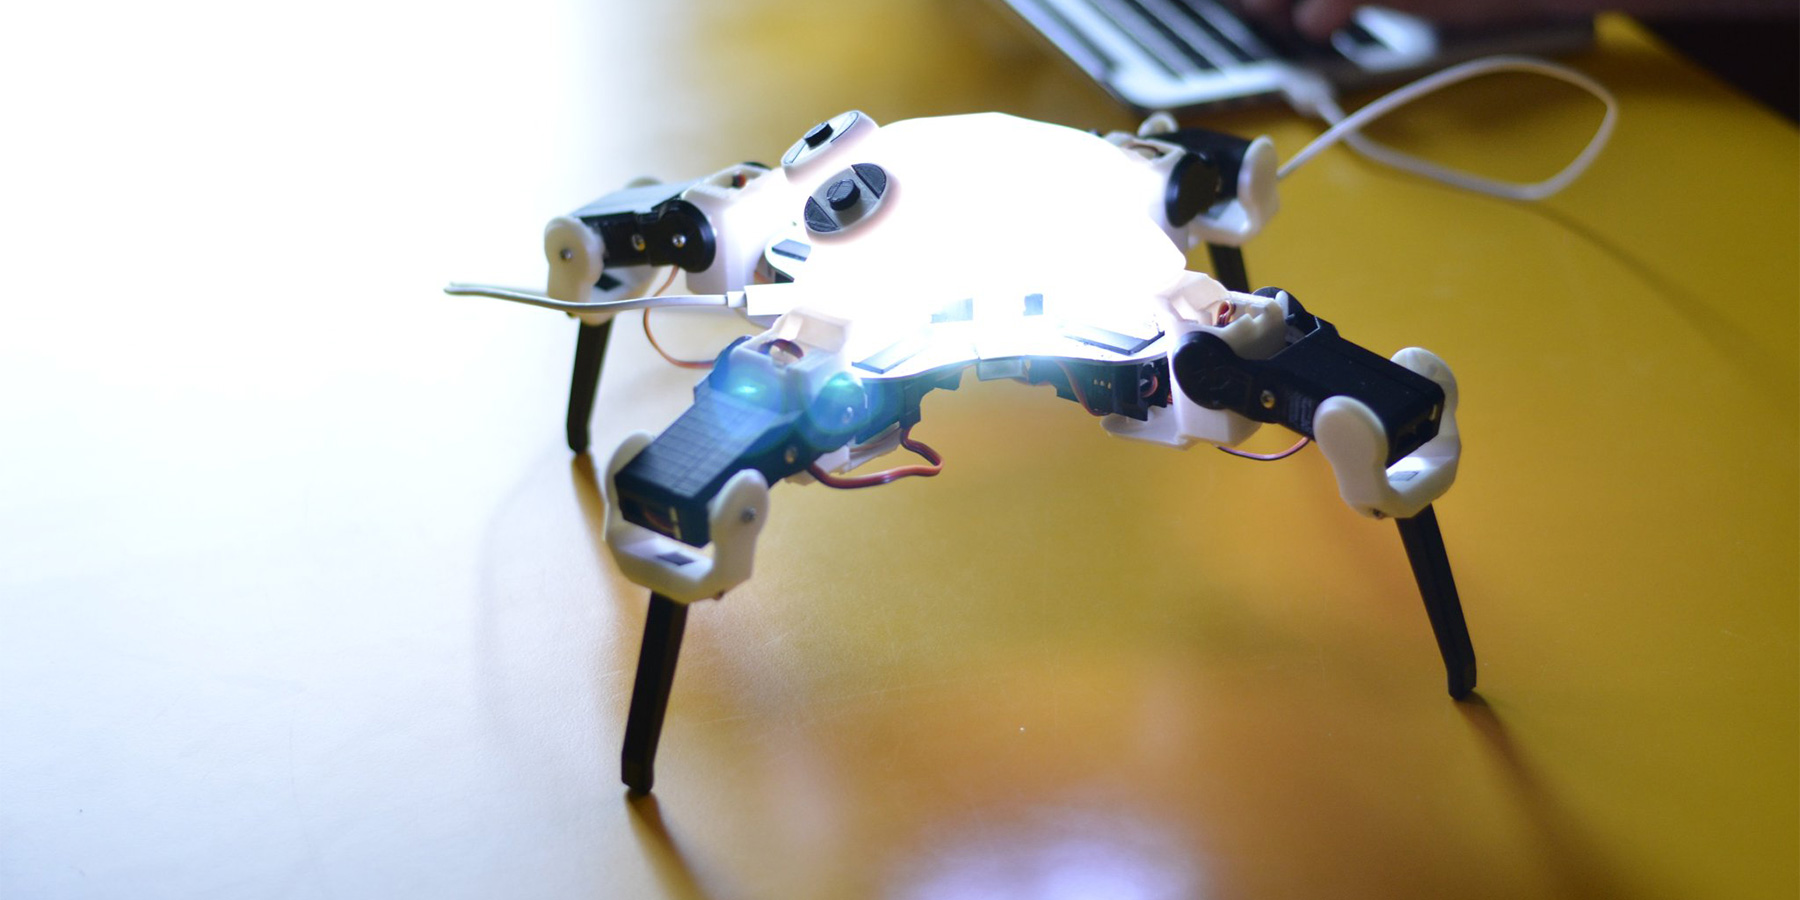 Reasons You Should Opt for an Open Source Robot